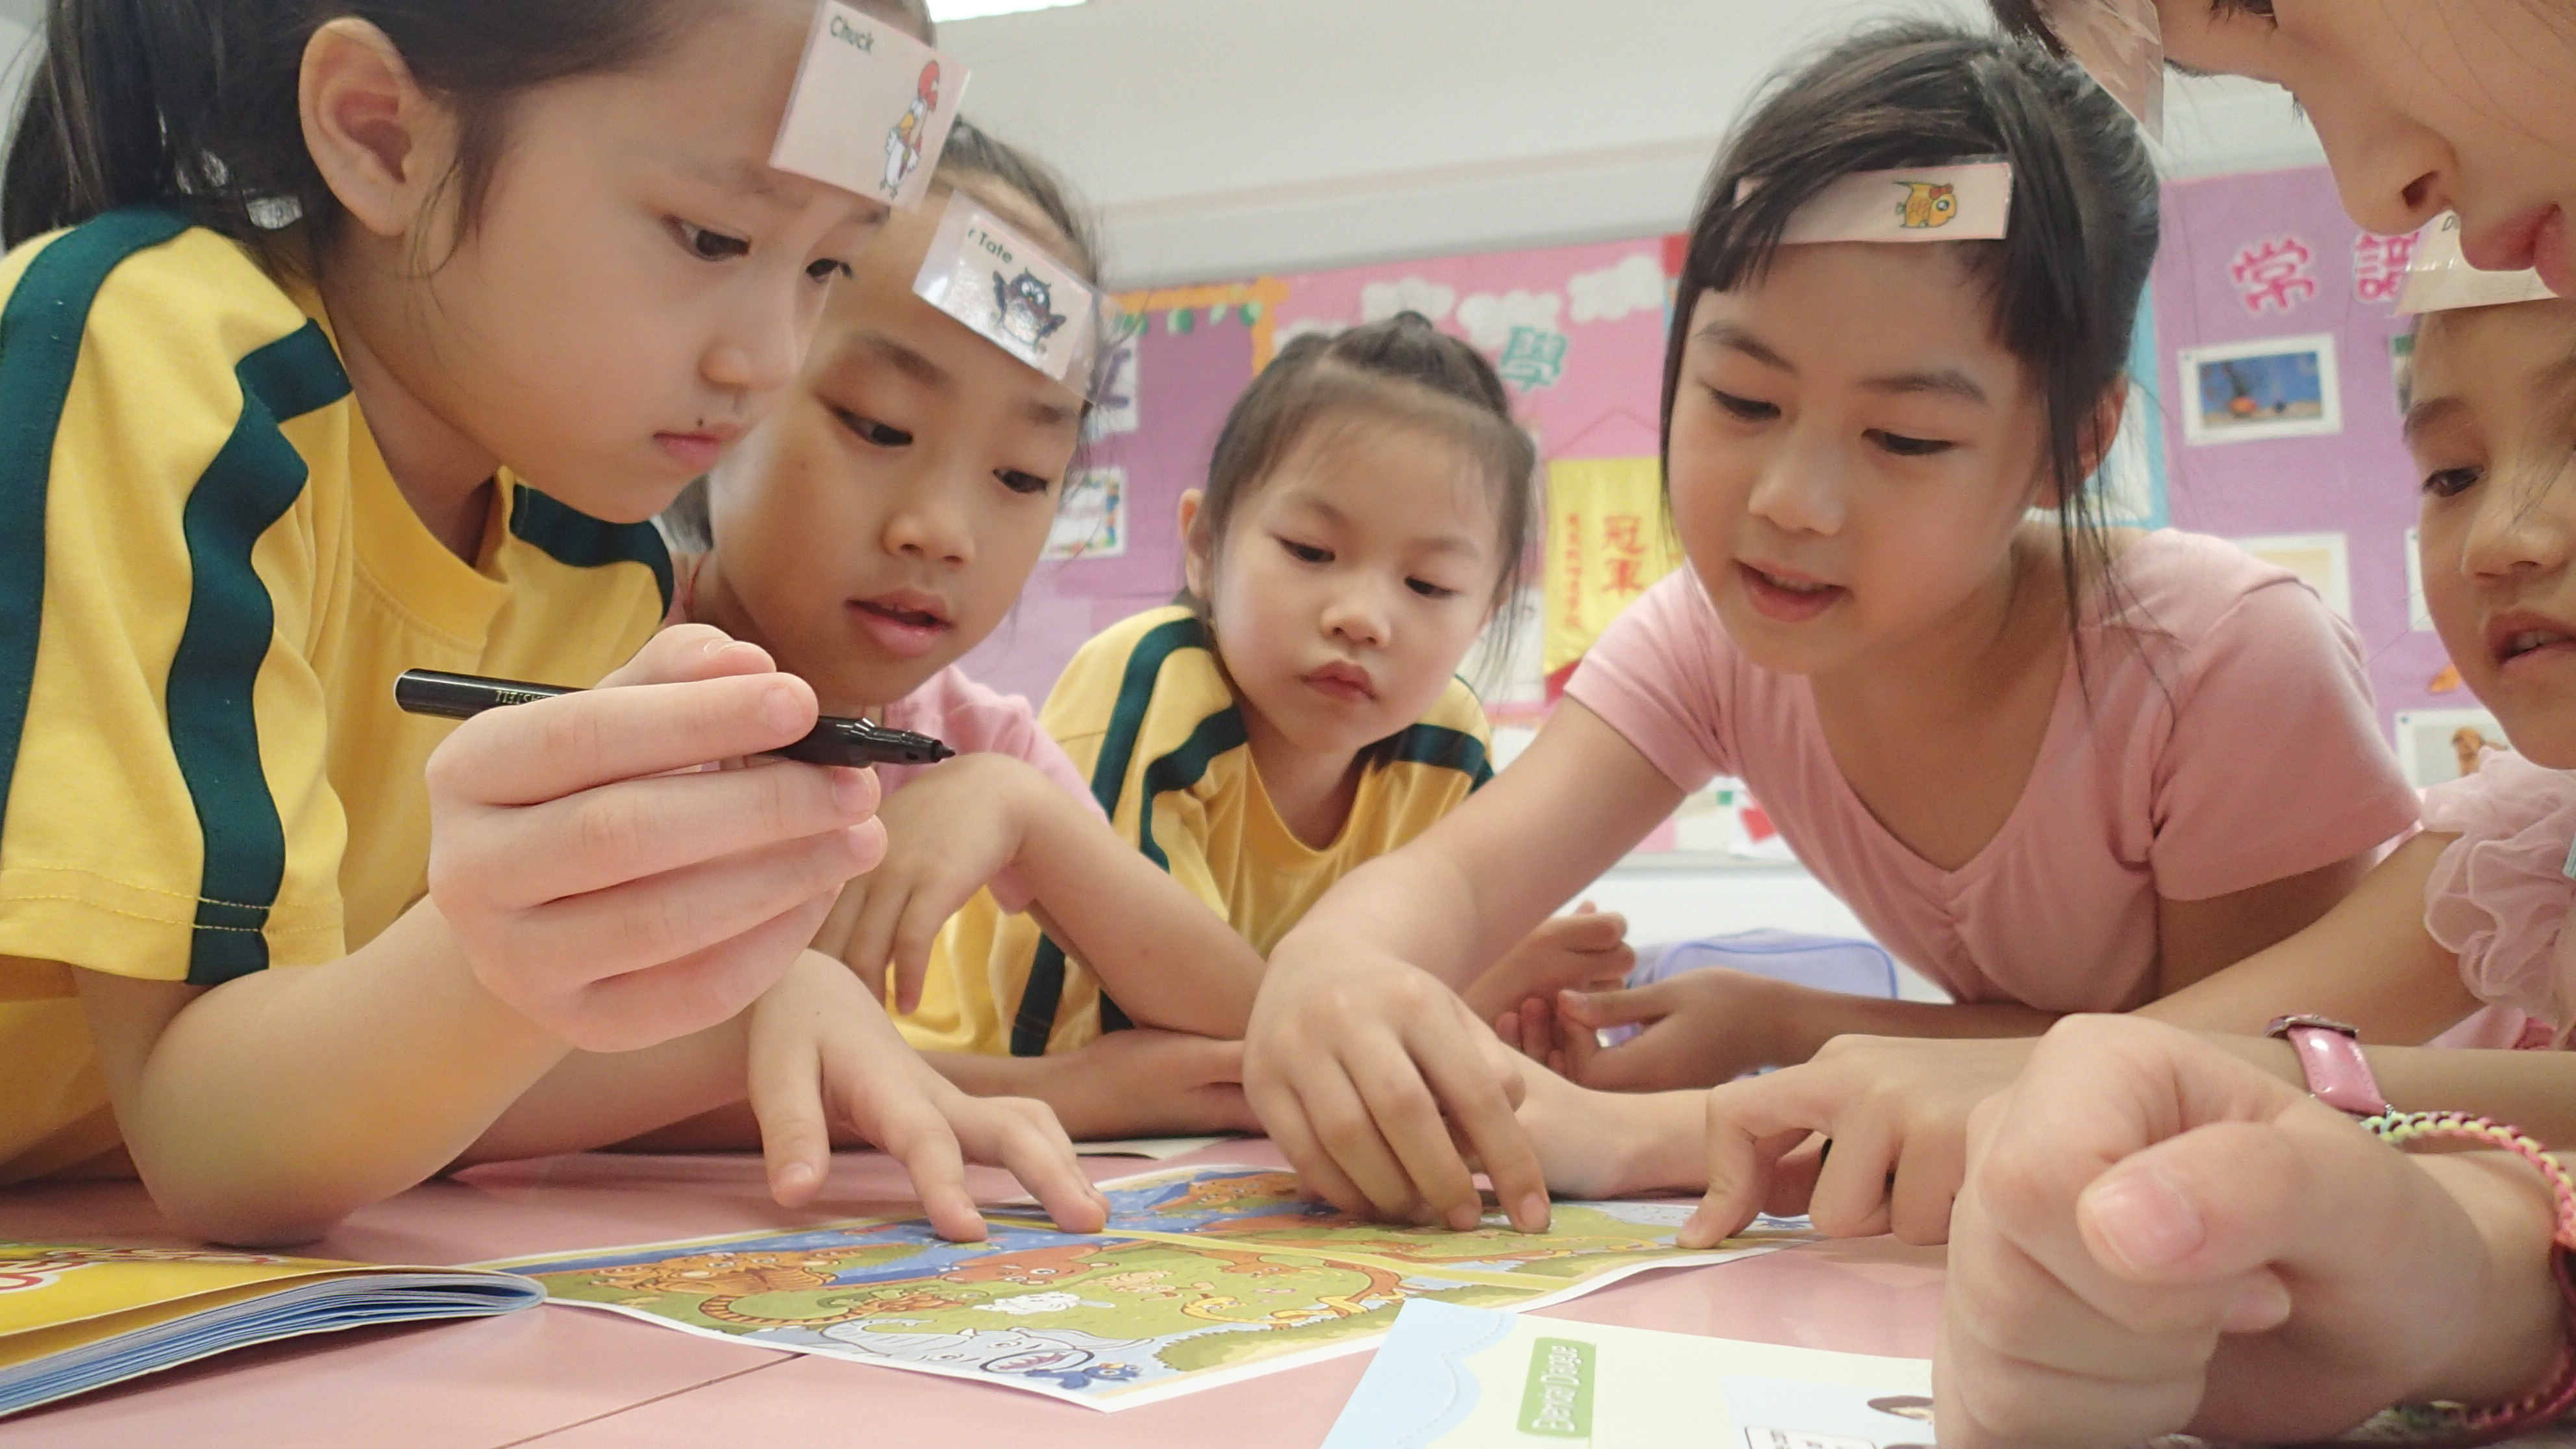 TEFL kindergarten students are playing at the desk